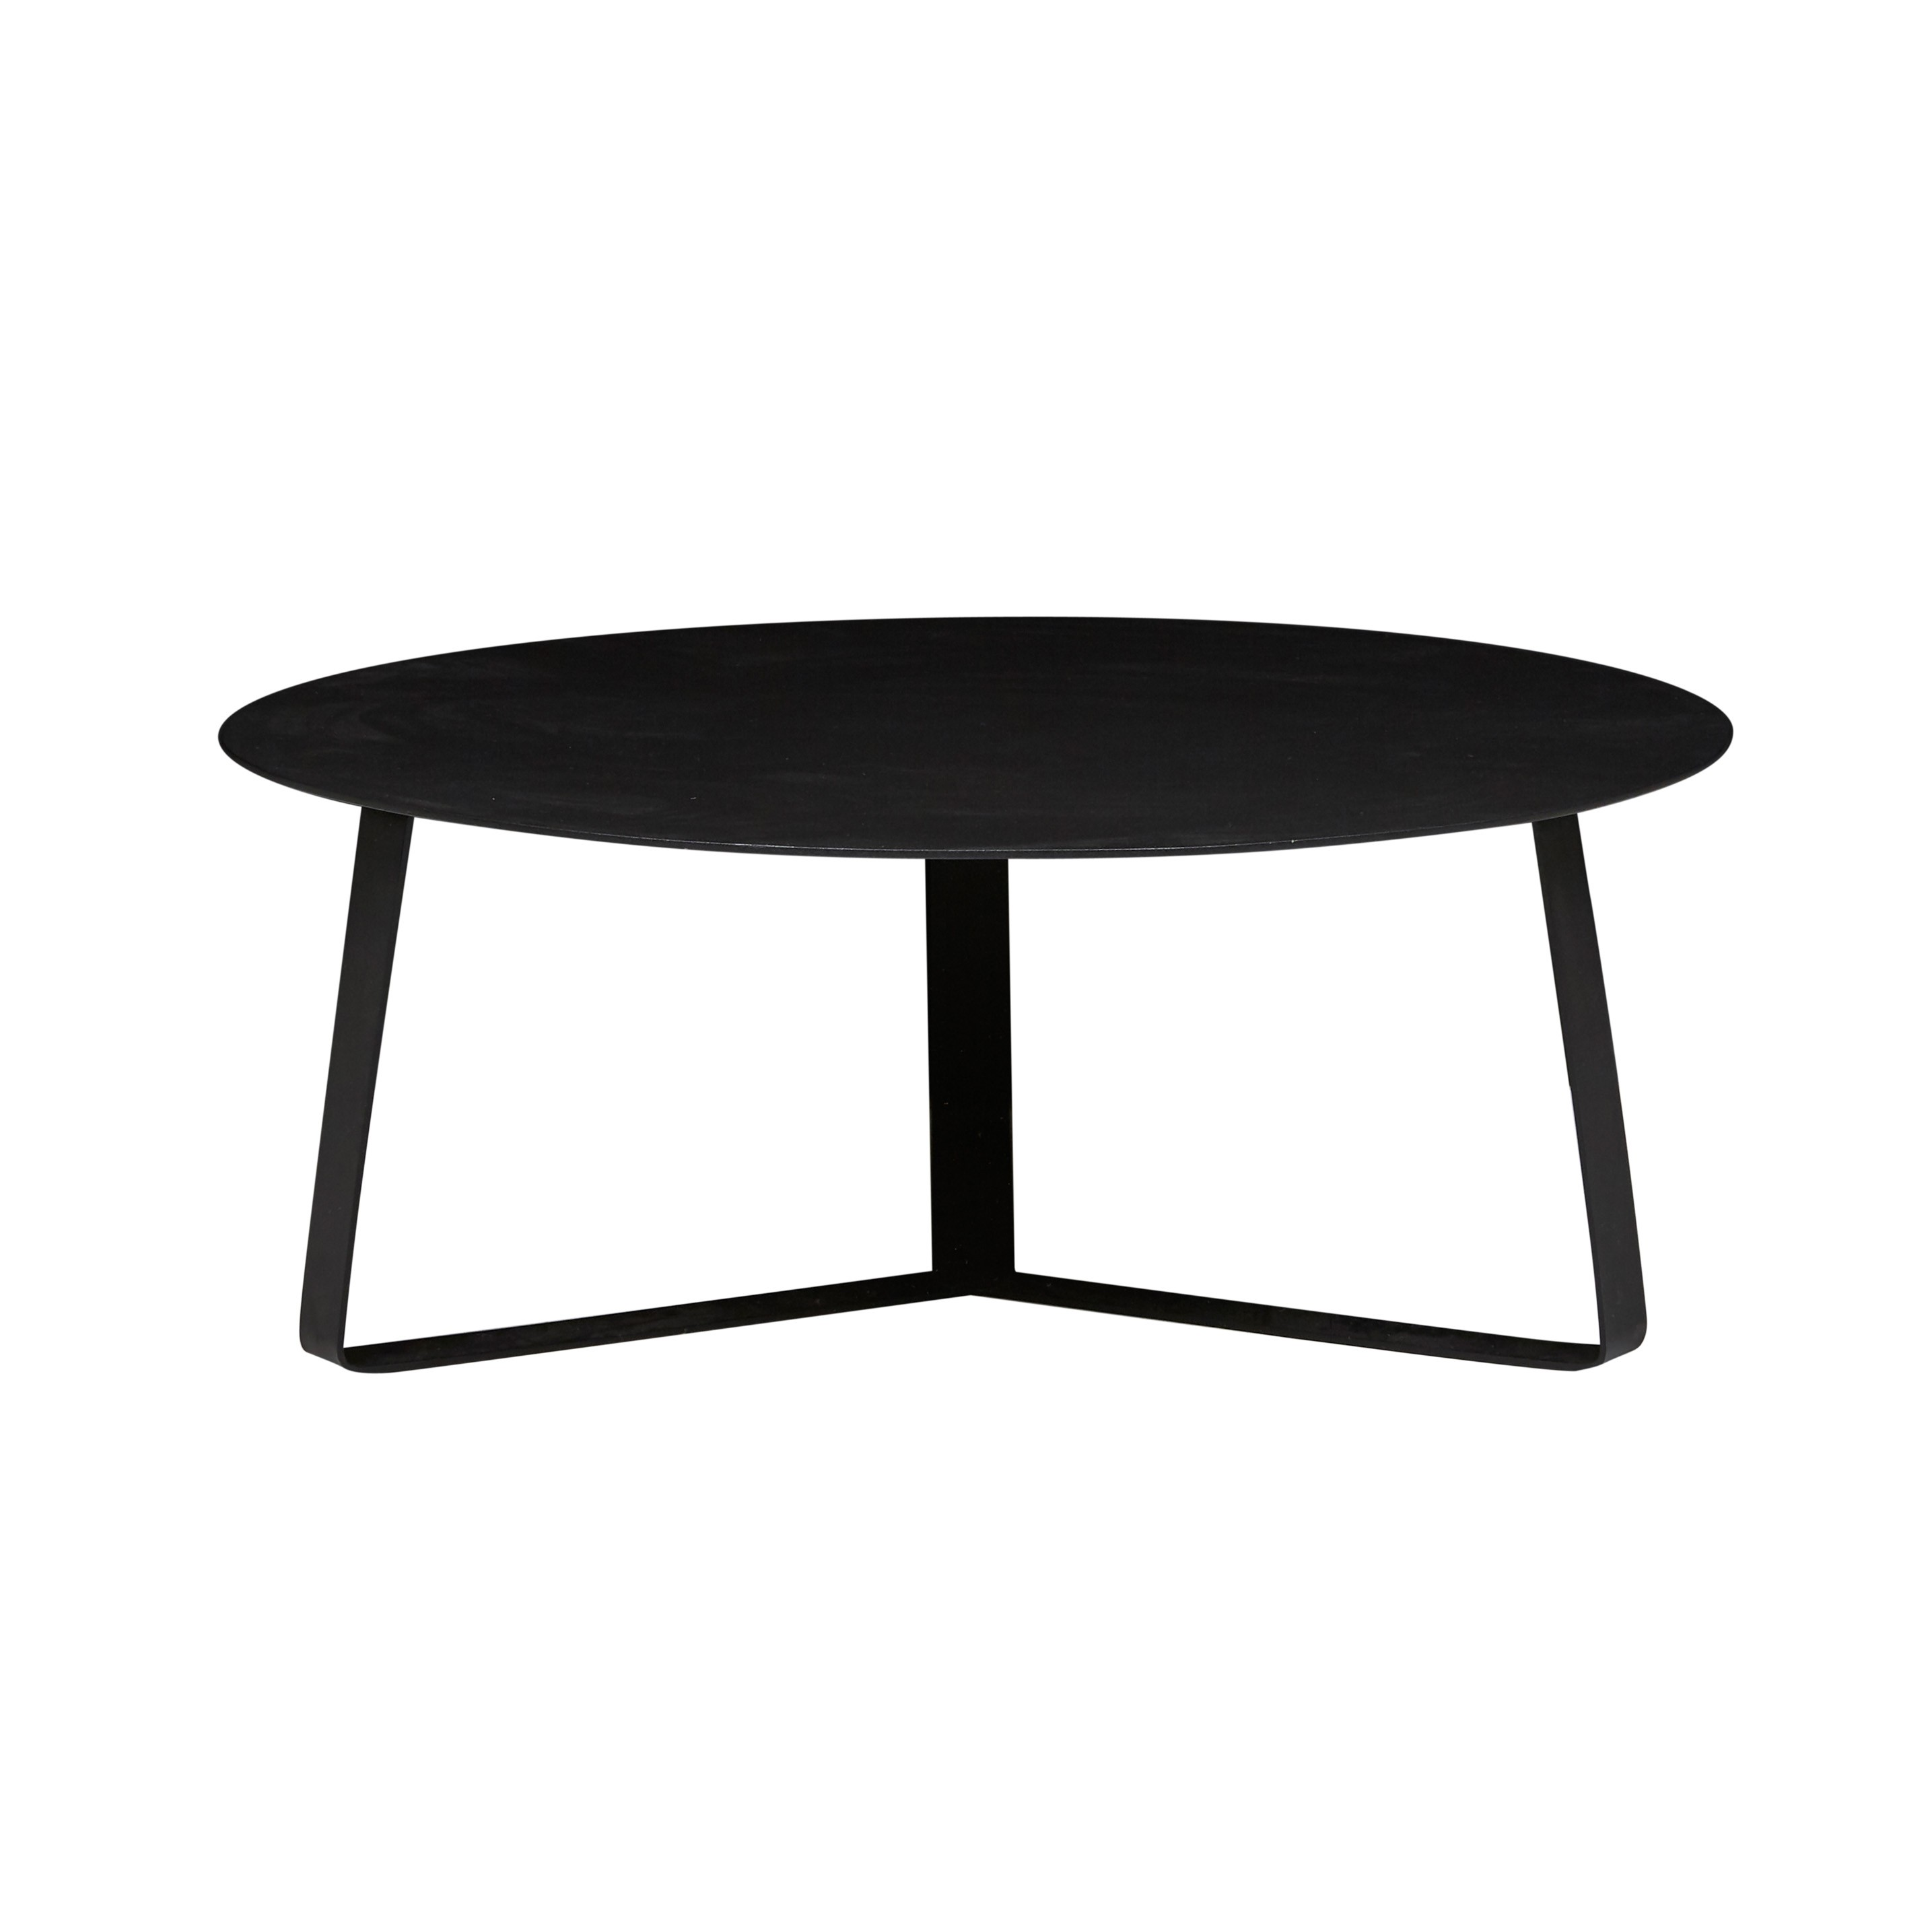 Furniture Hero-Images Coffee-Side-Tables-and-Trolleys cancun-ali-round-coffee-table-01